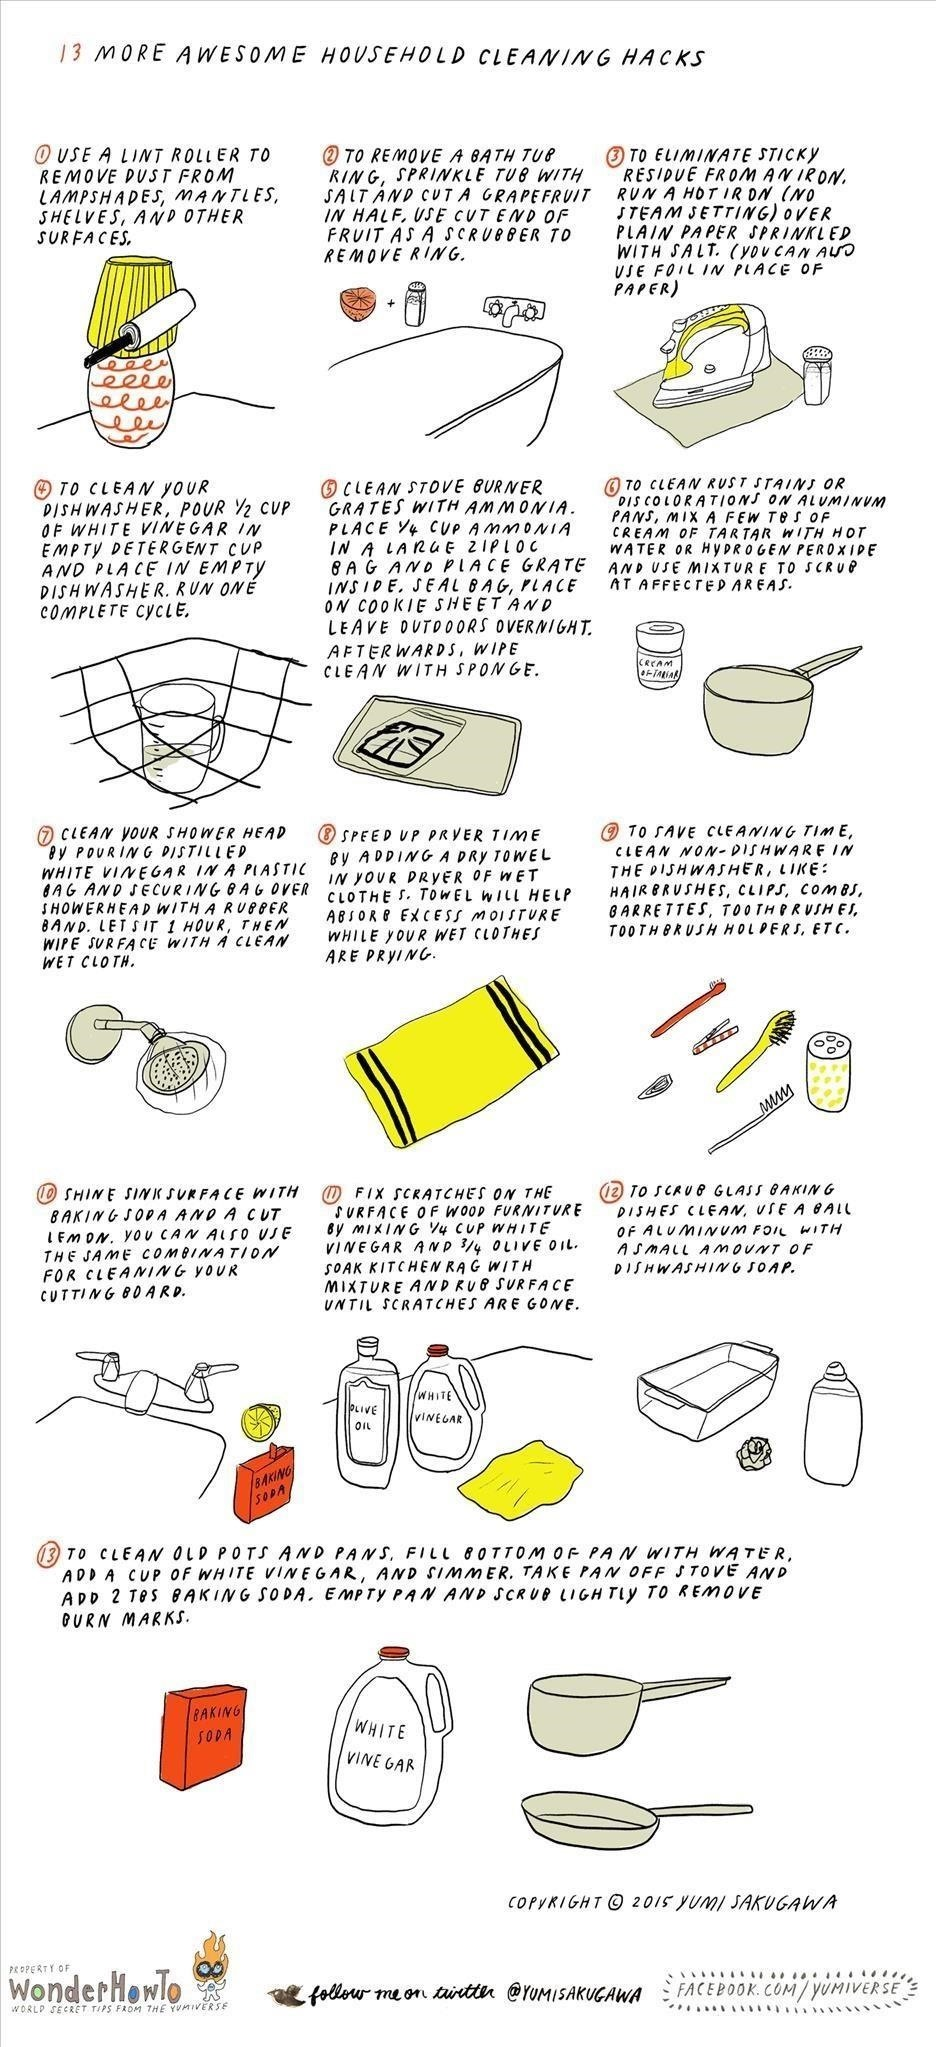 more awesome household cleaning hacks the secret yumiverse how to 13 more awesome household cleaning hacks